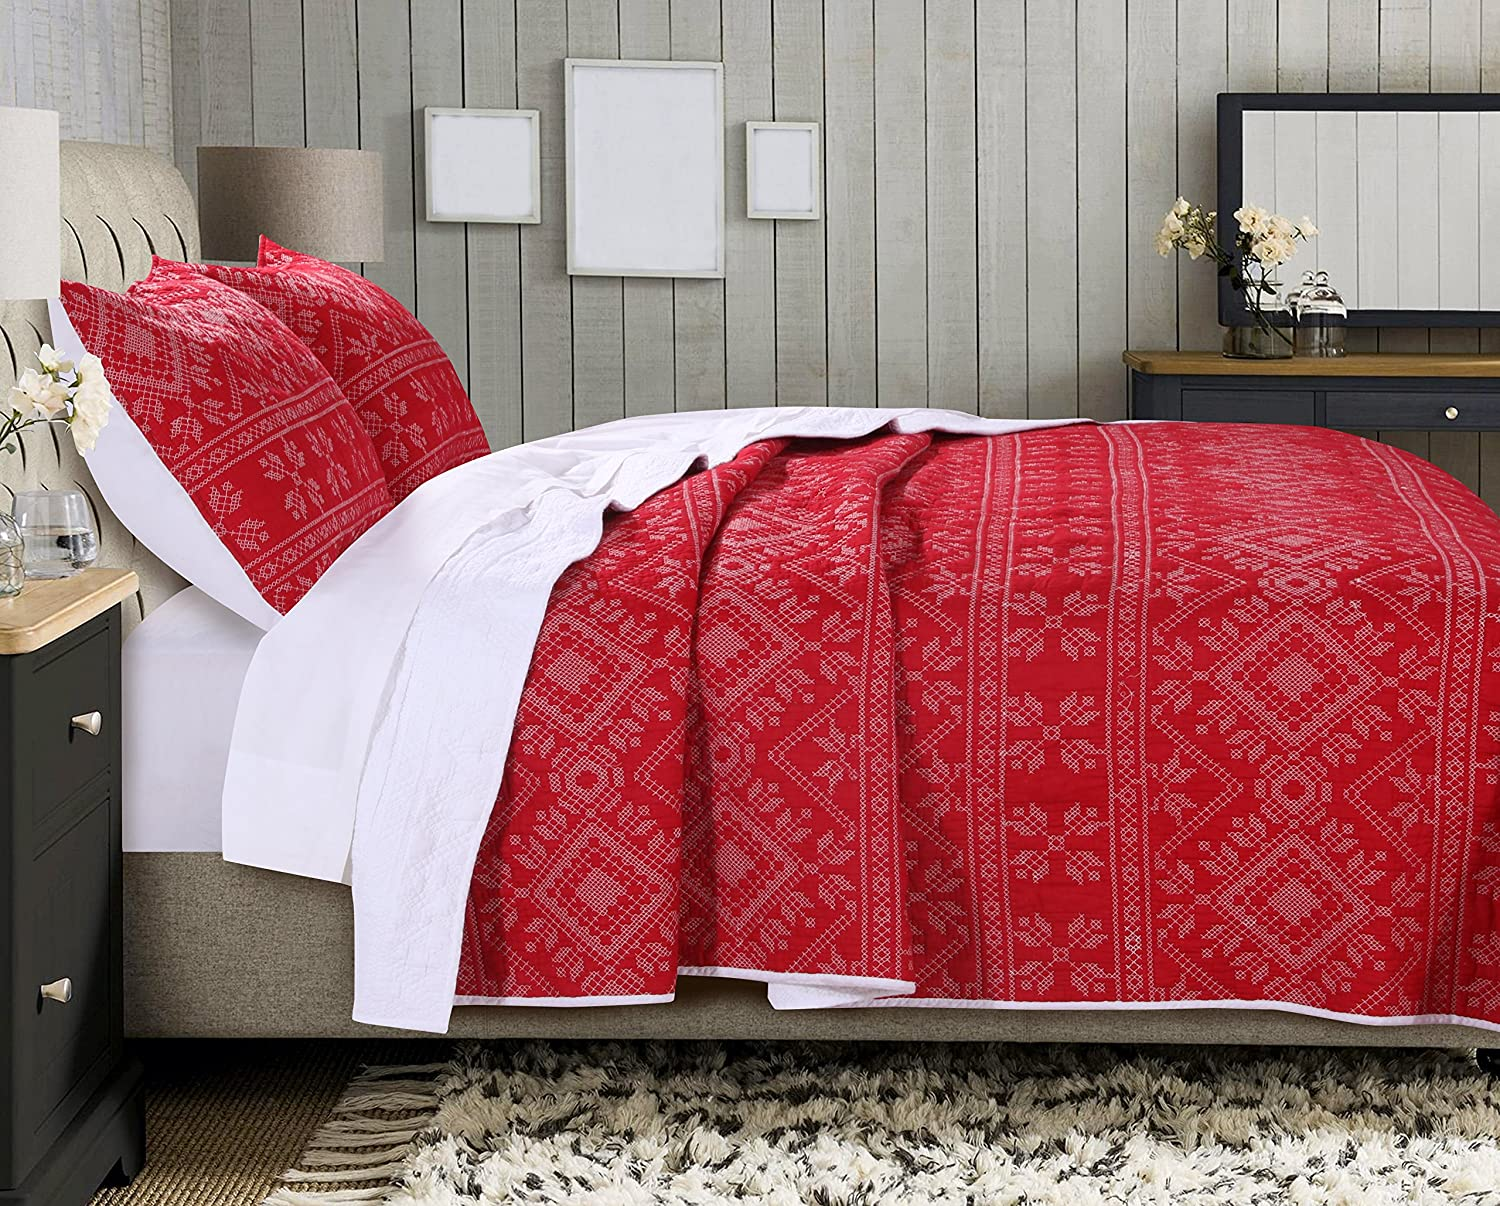 Greenland Home Holly Quilt Set with Cross Stitching, Red (2 Piece), Twin